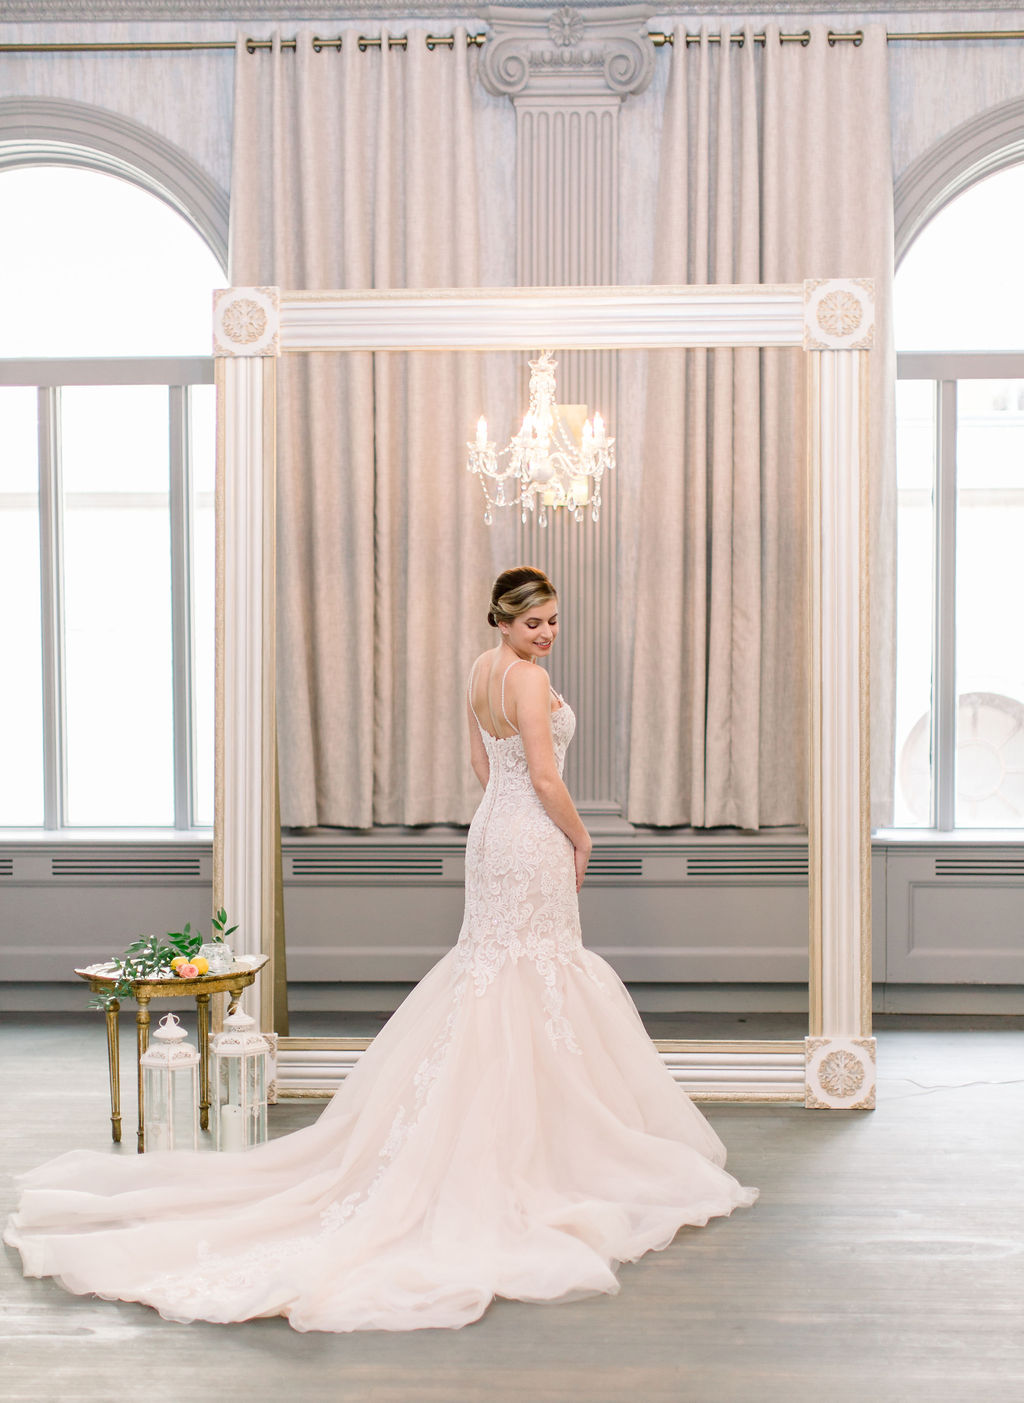 MAGGIE SOTTERO - Graceful and enduring bridal looks with a fresh and couture aesthetic, without the couture price tag! Maggie Sottero wedding dresses range in price from $1,148-$2,098.Photo by Chelsea Saxby PhotographyLocation: The Wilder RoomRentals: Something Borrowed RentalsShoot Coordination: Looloo's eventsModel: Sarah LaplacaFlorals: The Flower Girl